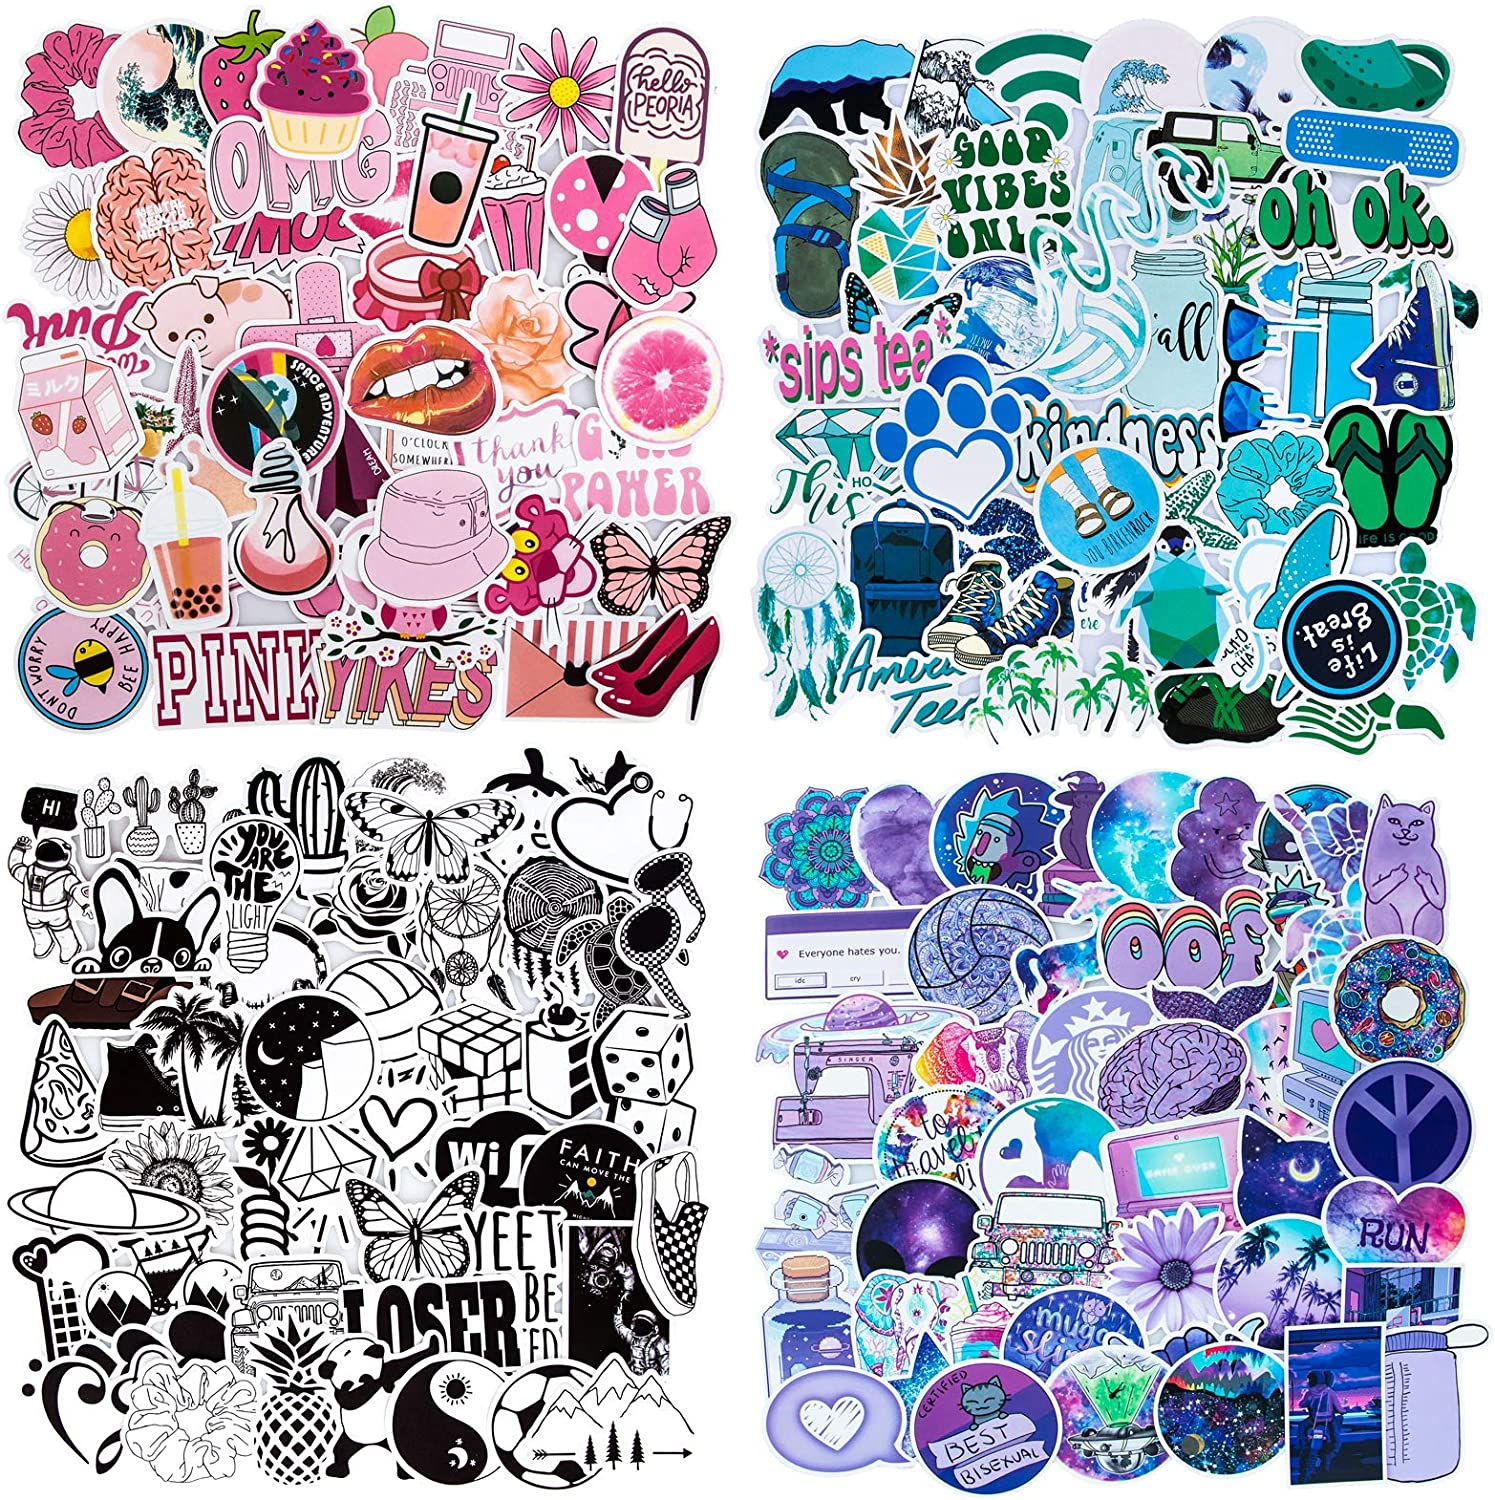 Mixed Cute VSCO Stickers, Waterproof Vinyl Stickers for Water Bottles, Trendy Aesthetic Stickers for Teens VSCO Girl Gifts, Popular Guitar Laptop Stickers Graffiti Decals [200pcs Sticker Pack]